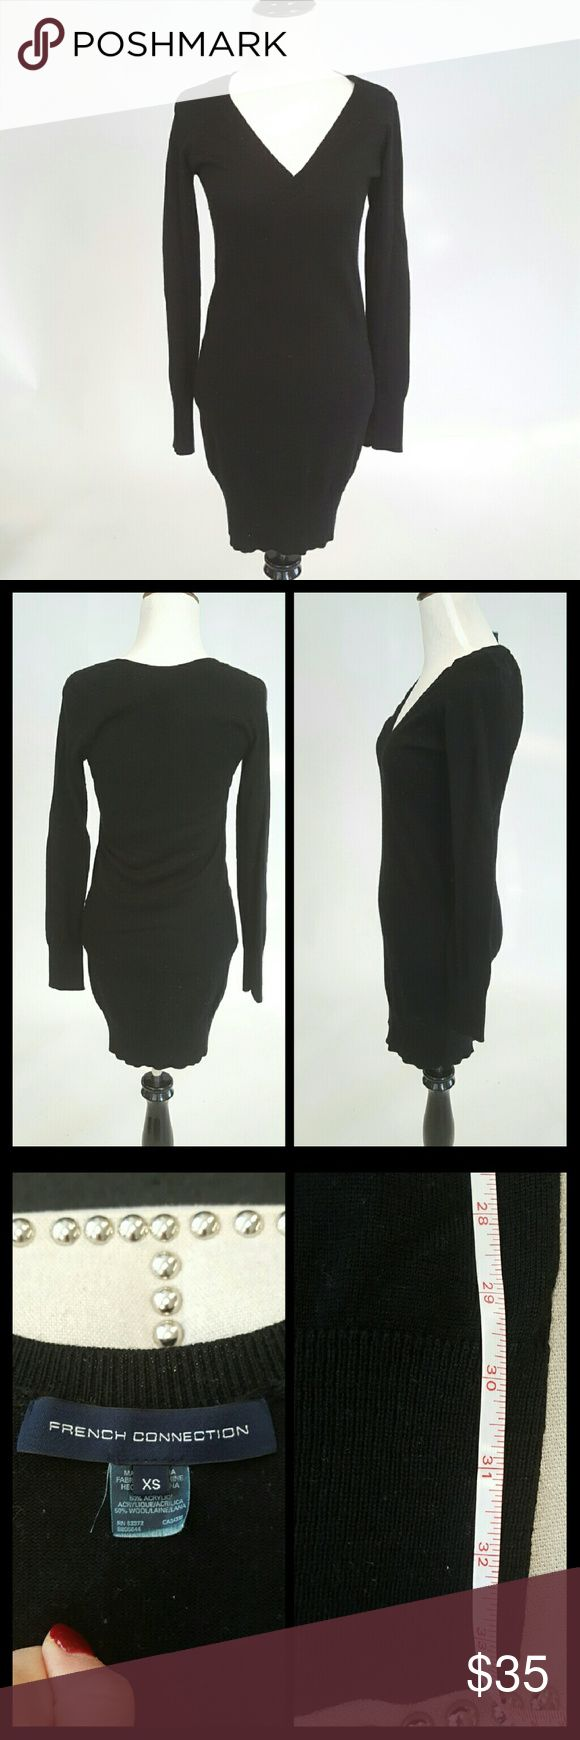 French Connection Sweater dress Slimming jet black, thin v-neck sweater dress in size XS. This was my go to outfit with black leggings and boots. Very flattering and comfy to wear. I wore it with uggs, and dressed it up with heeled boots. Preloved, but  condition. French Connection Dresses